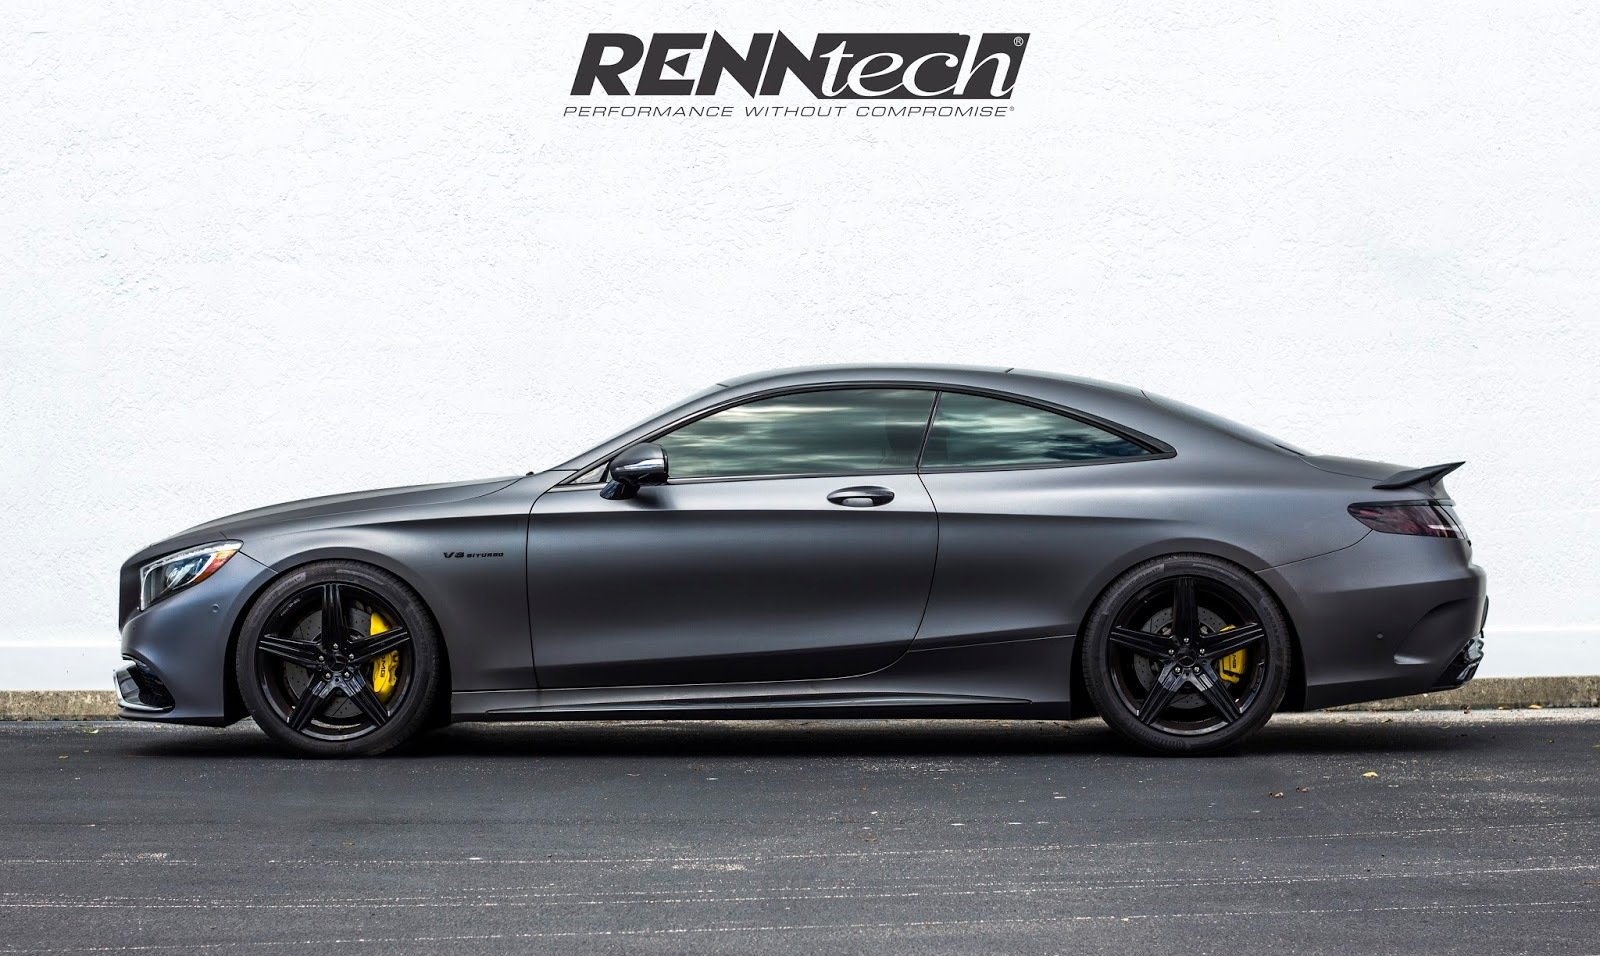 2016 mercedes amg s63 coupe by renntech picture 679331 car review top speed. Black Bedroom Furniture Sets. Home Design Ideas